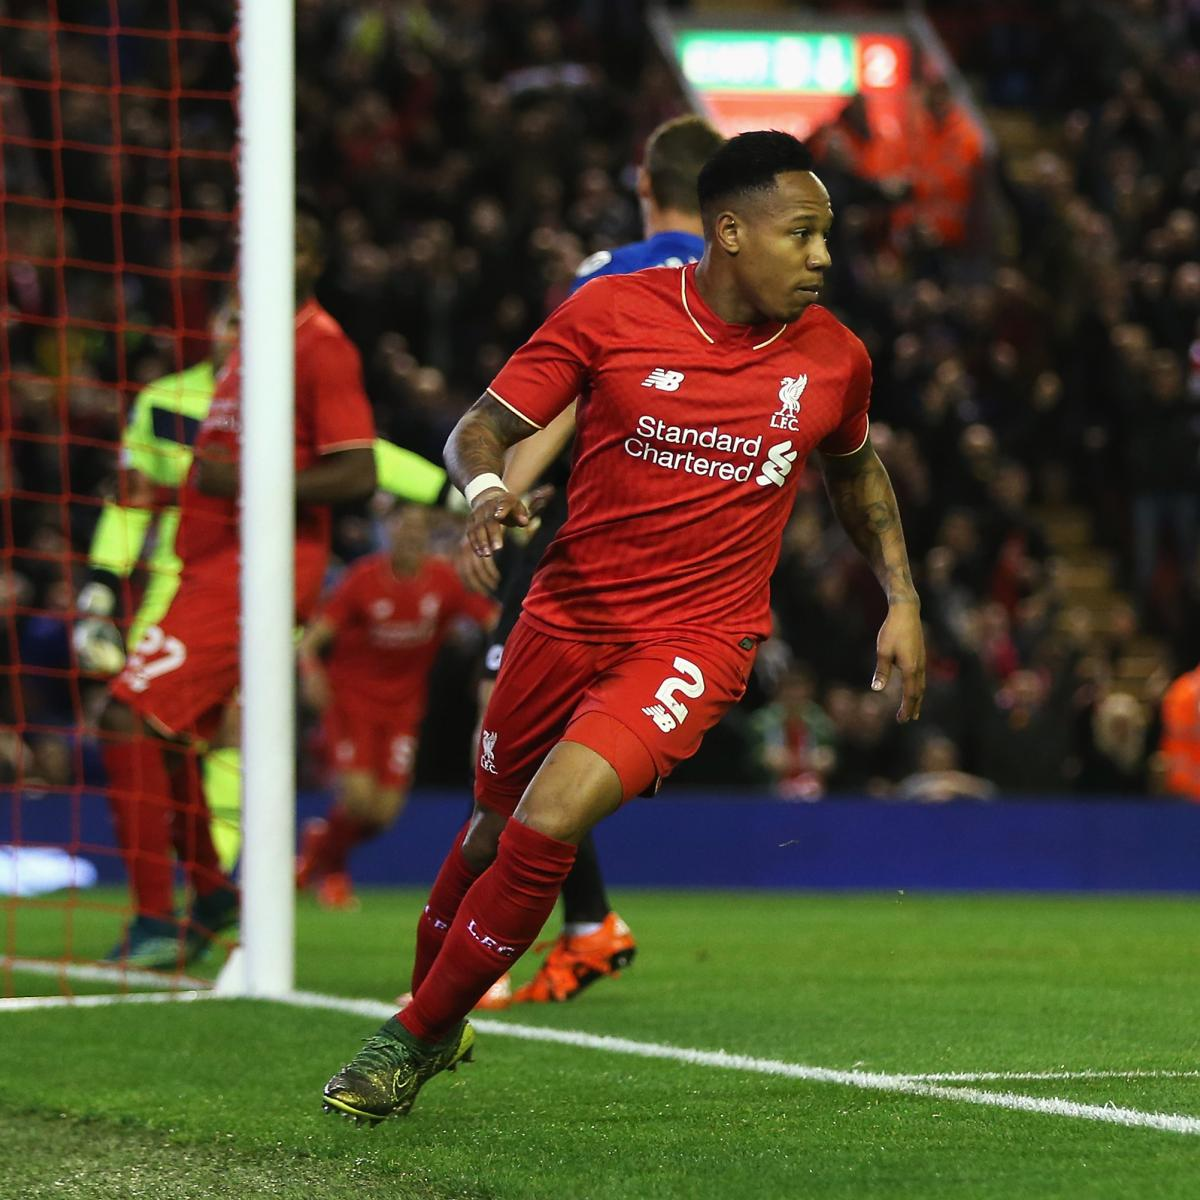 Liverpool Vs. Bournemouth: Live Score, Highlights From